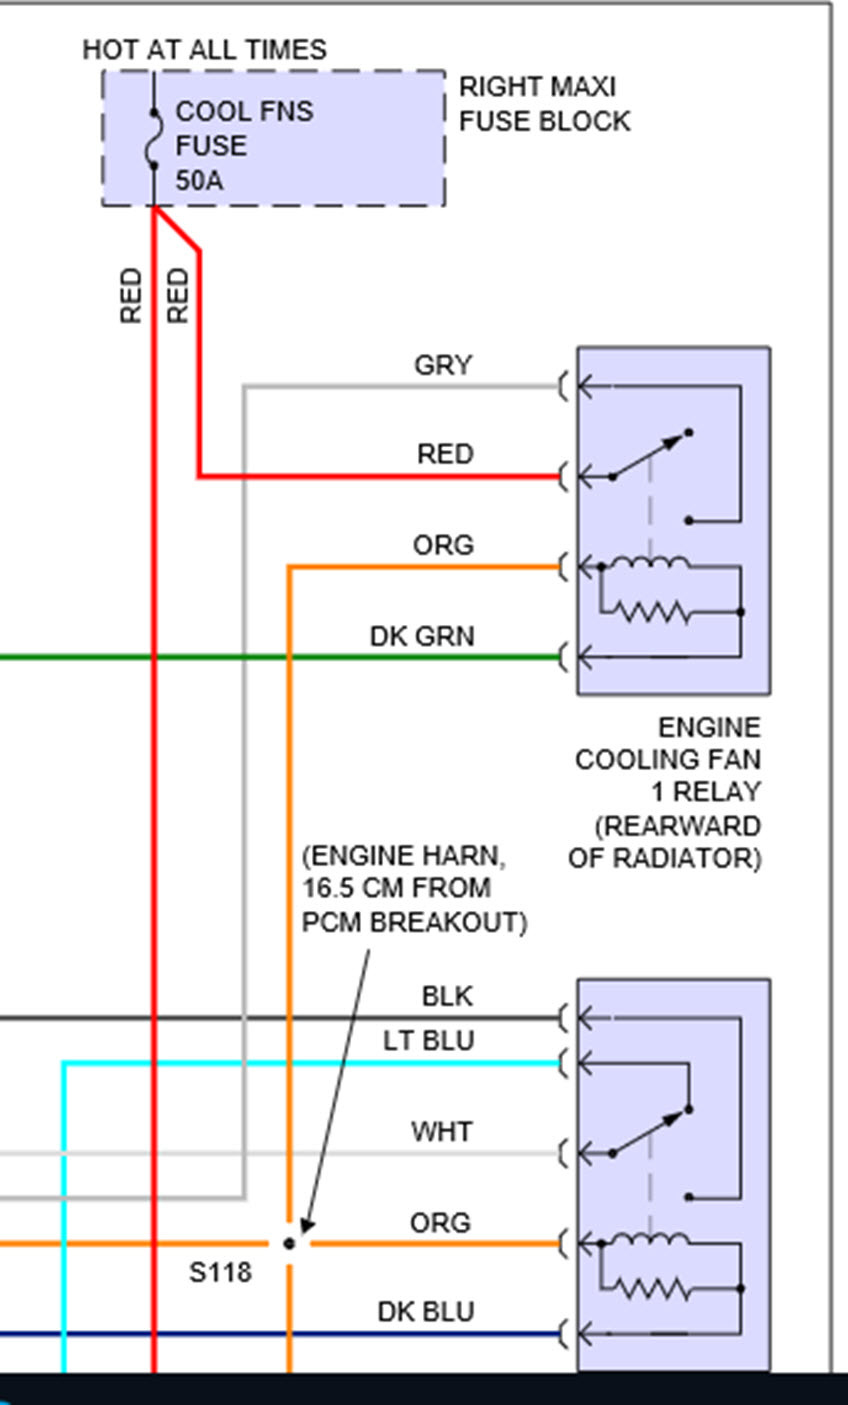 92 Cadillac Seville Fuse Box Diagram Wiring Library Panel For Deville 1998 Cooling Fan My Car Is Overheating It A